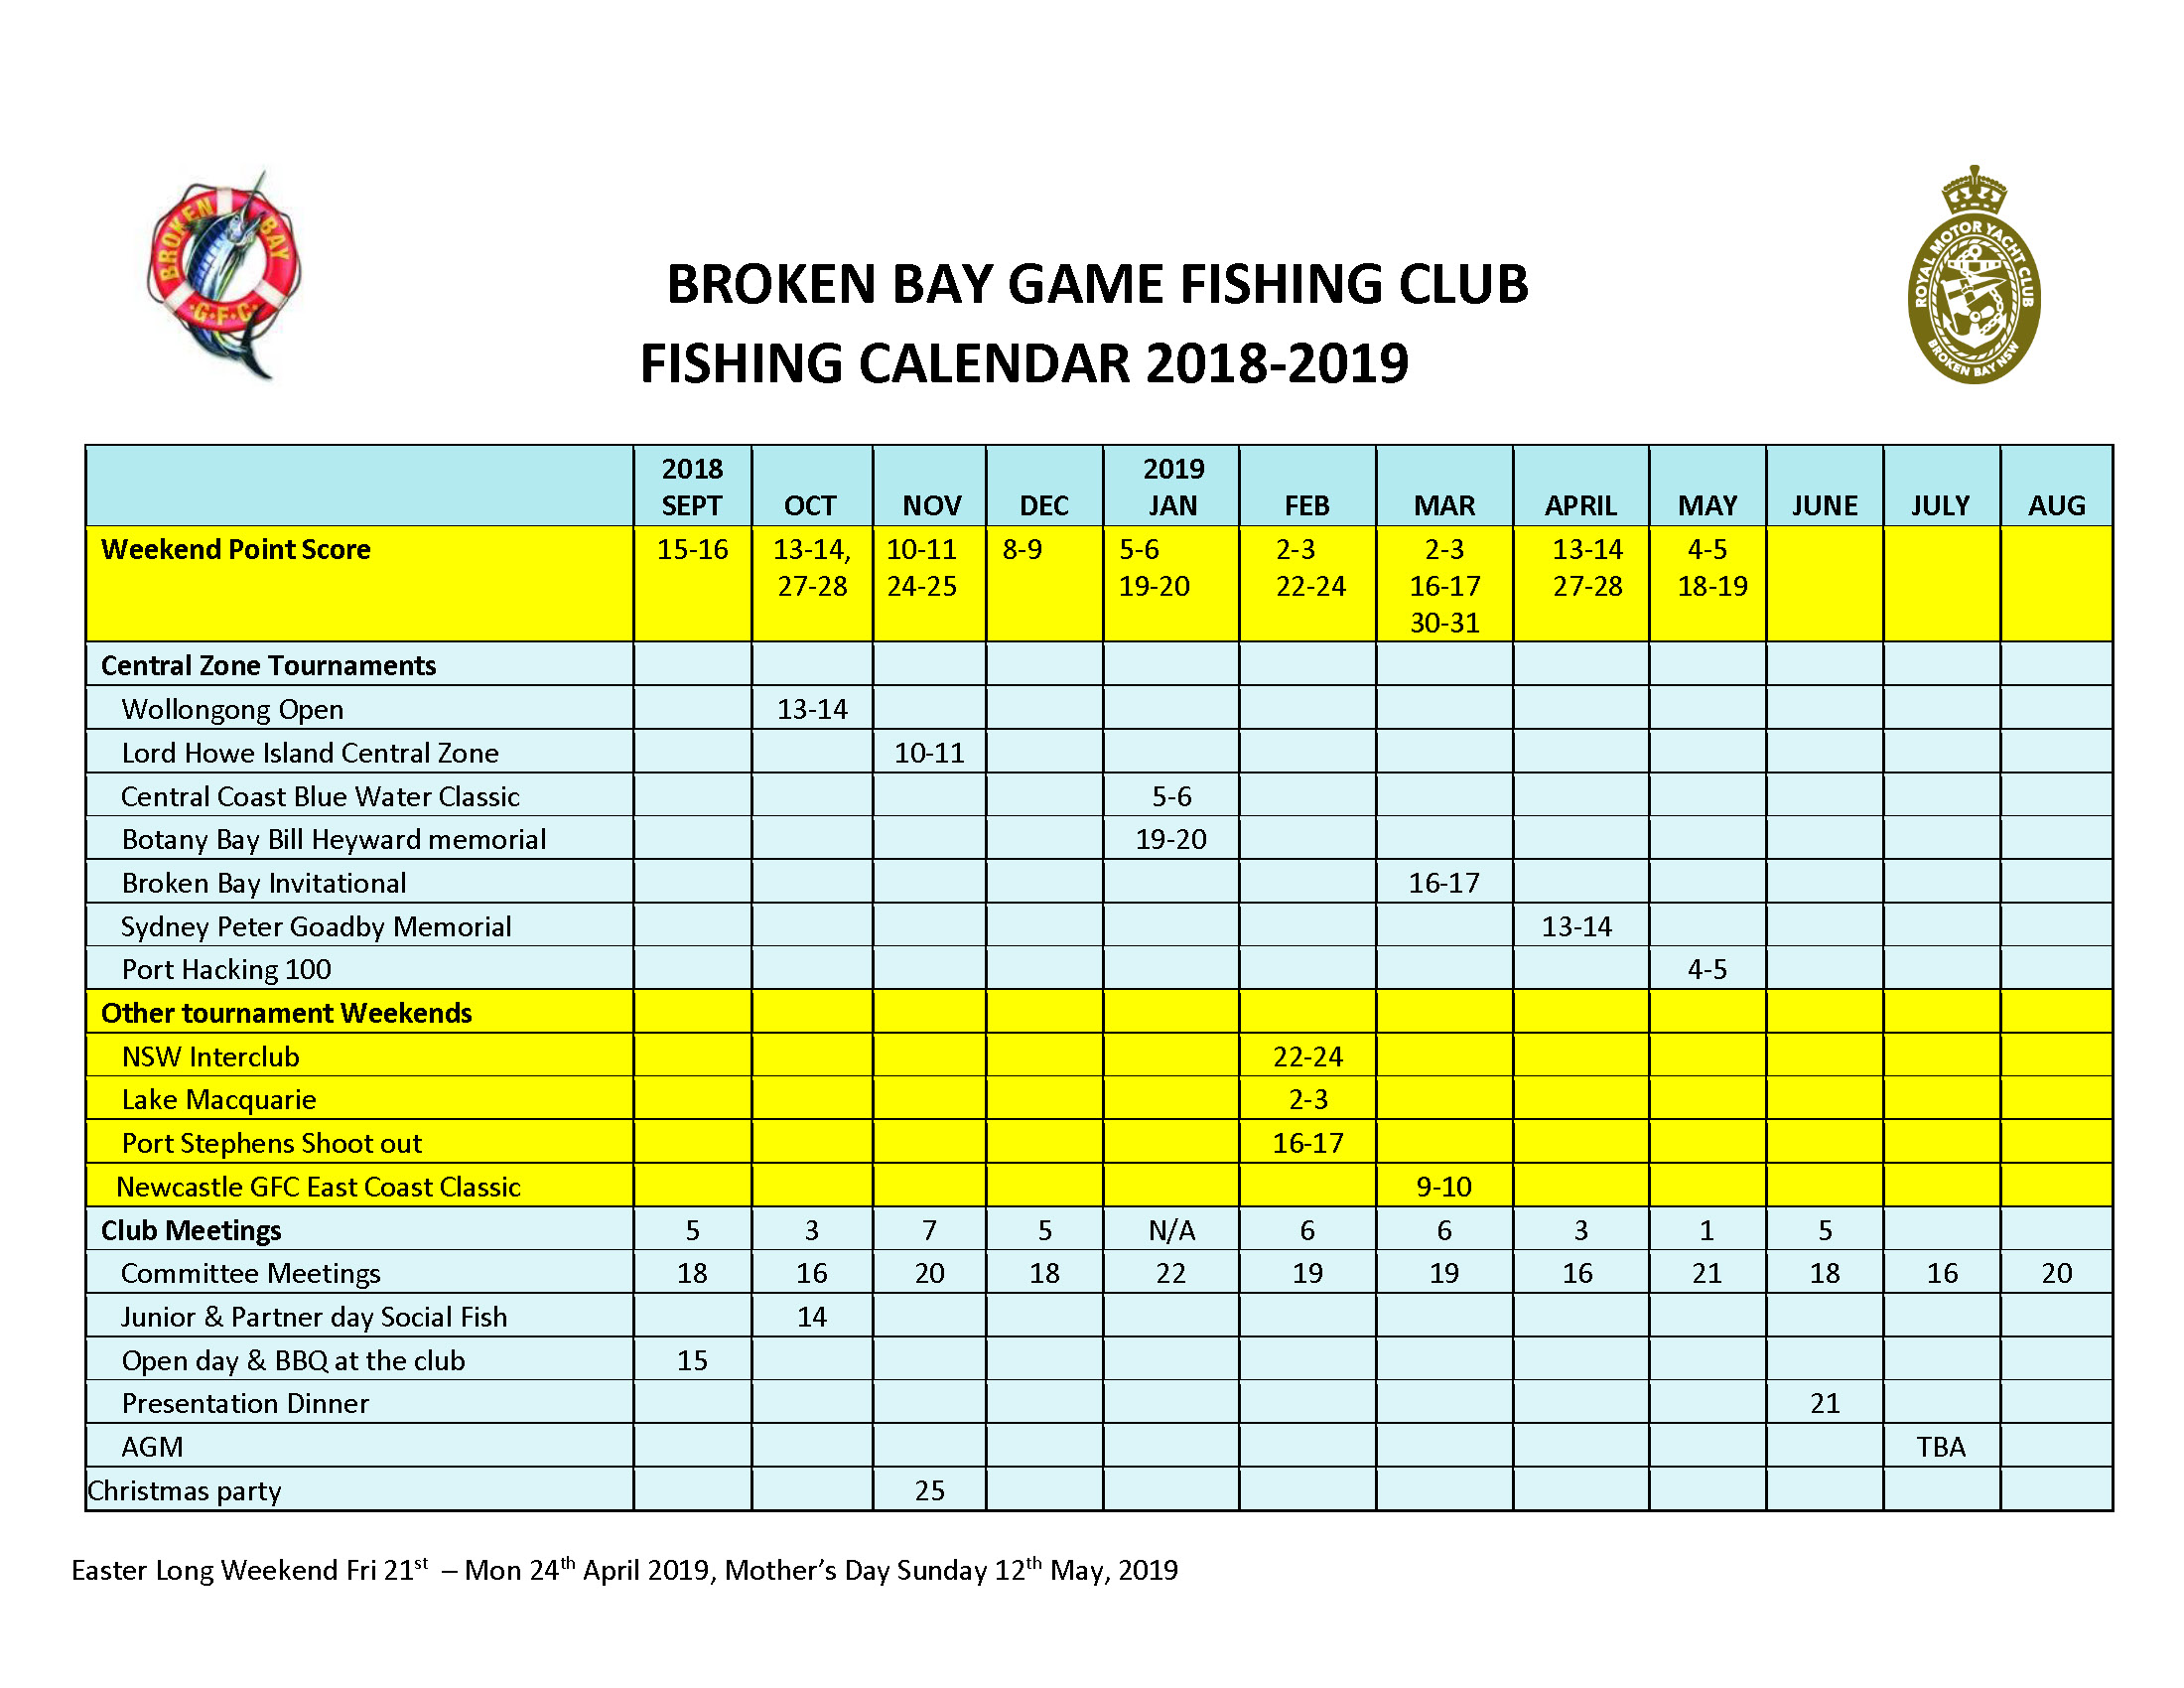 BBGFC Fishing Calendar 2018 2019 incl NGFC